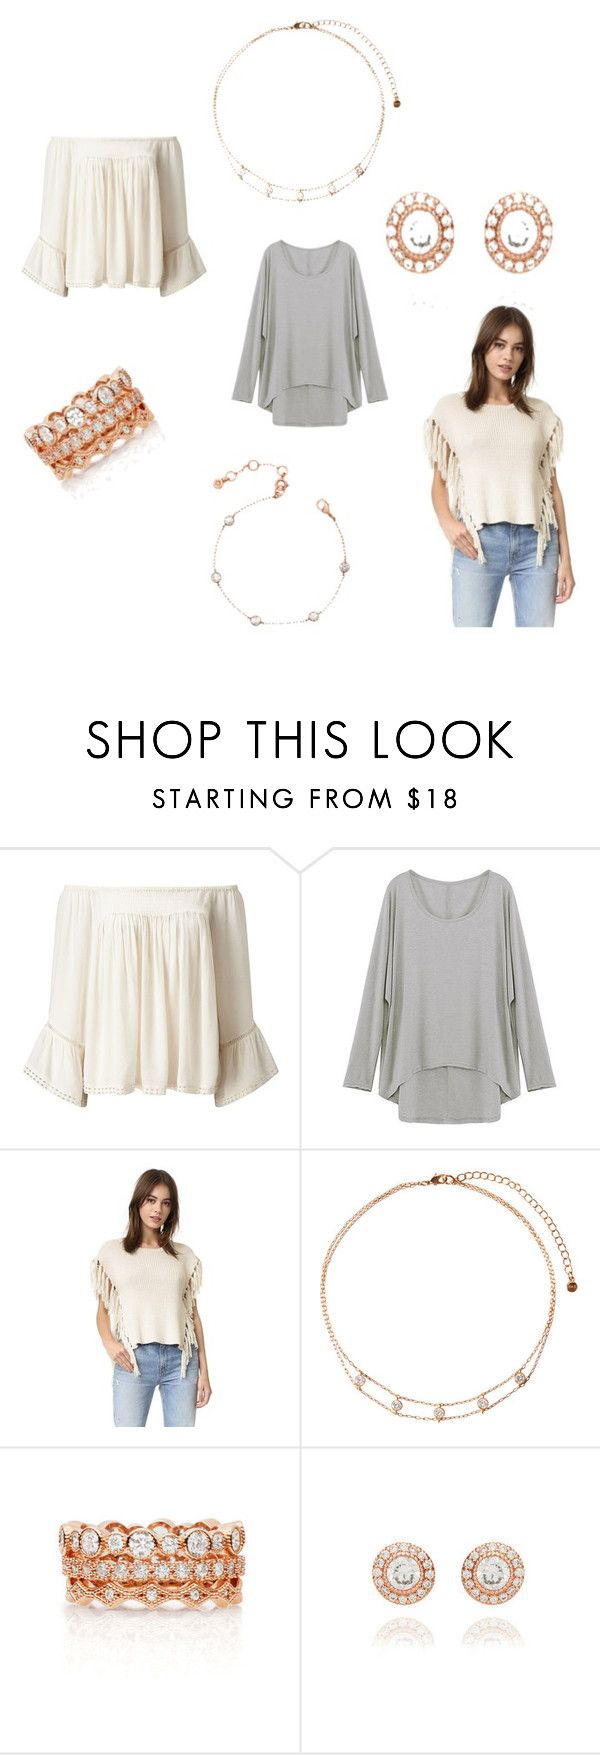 """""""Fleur De Paris a Collection!"""" by mertensmk on Polyvore featuring Miss Selfridge, cupcakes and cashmere and Chloe + Isabel"""